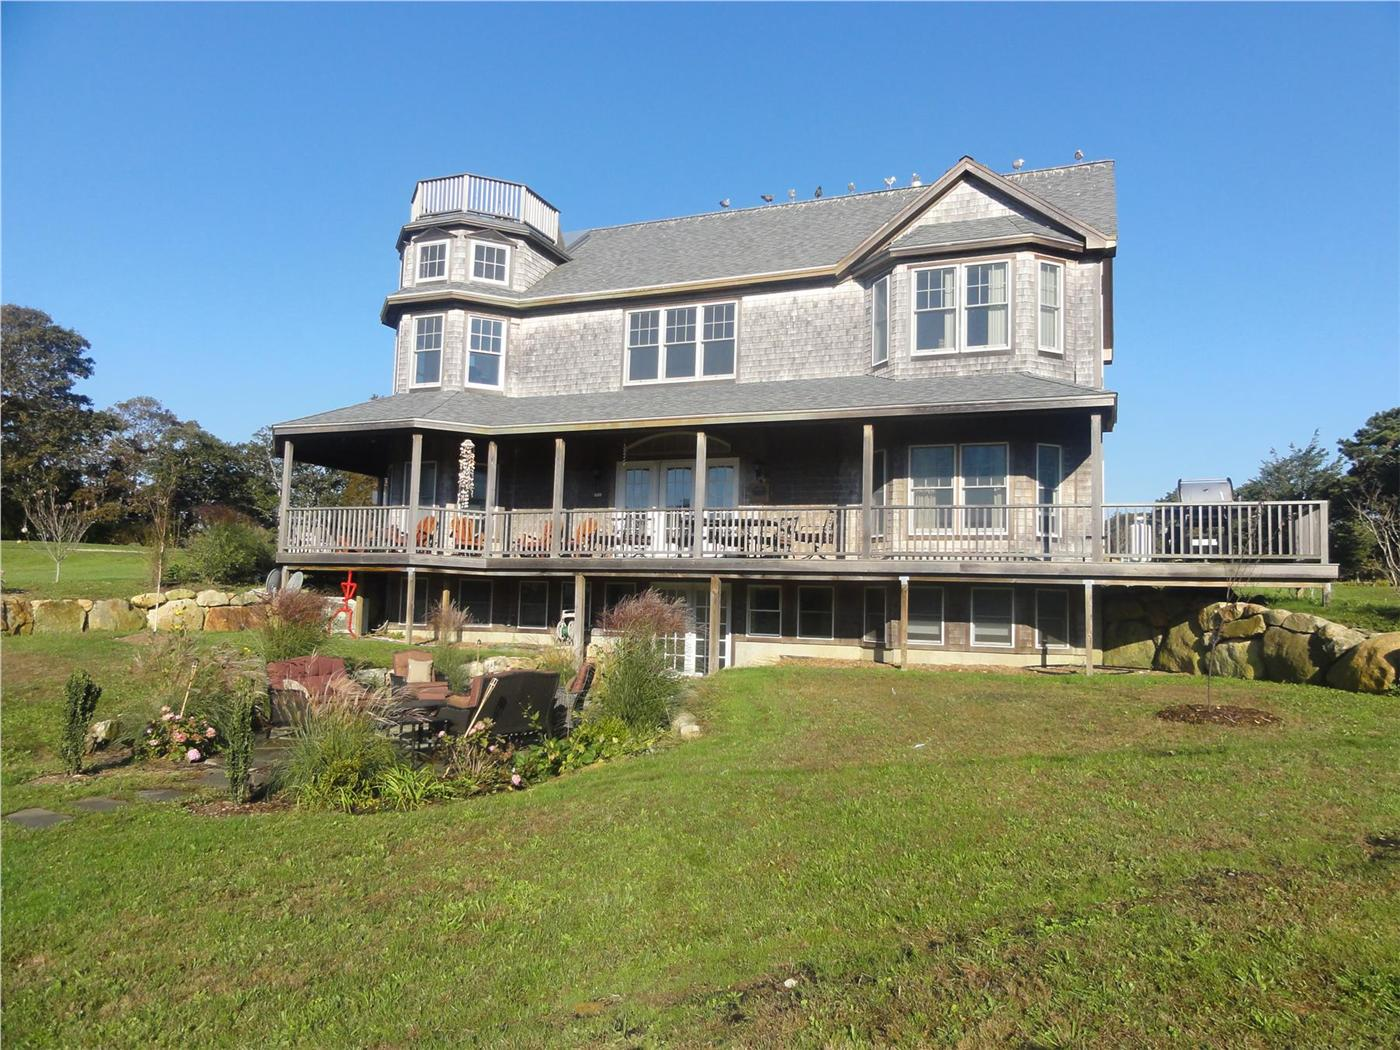 Oak Bluffs Vacation Rental Home In Martha S Vineyard Ma 02557 Id 19801